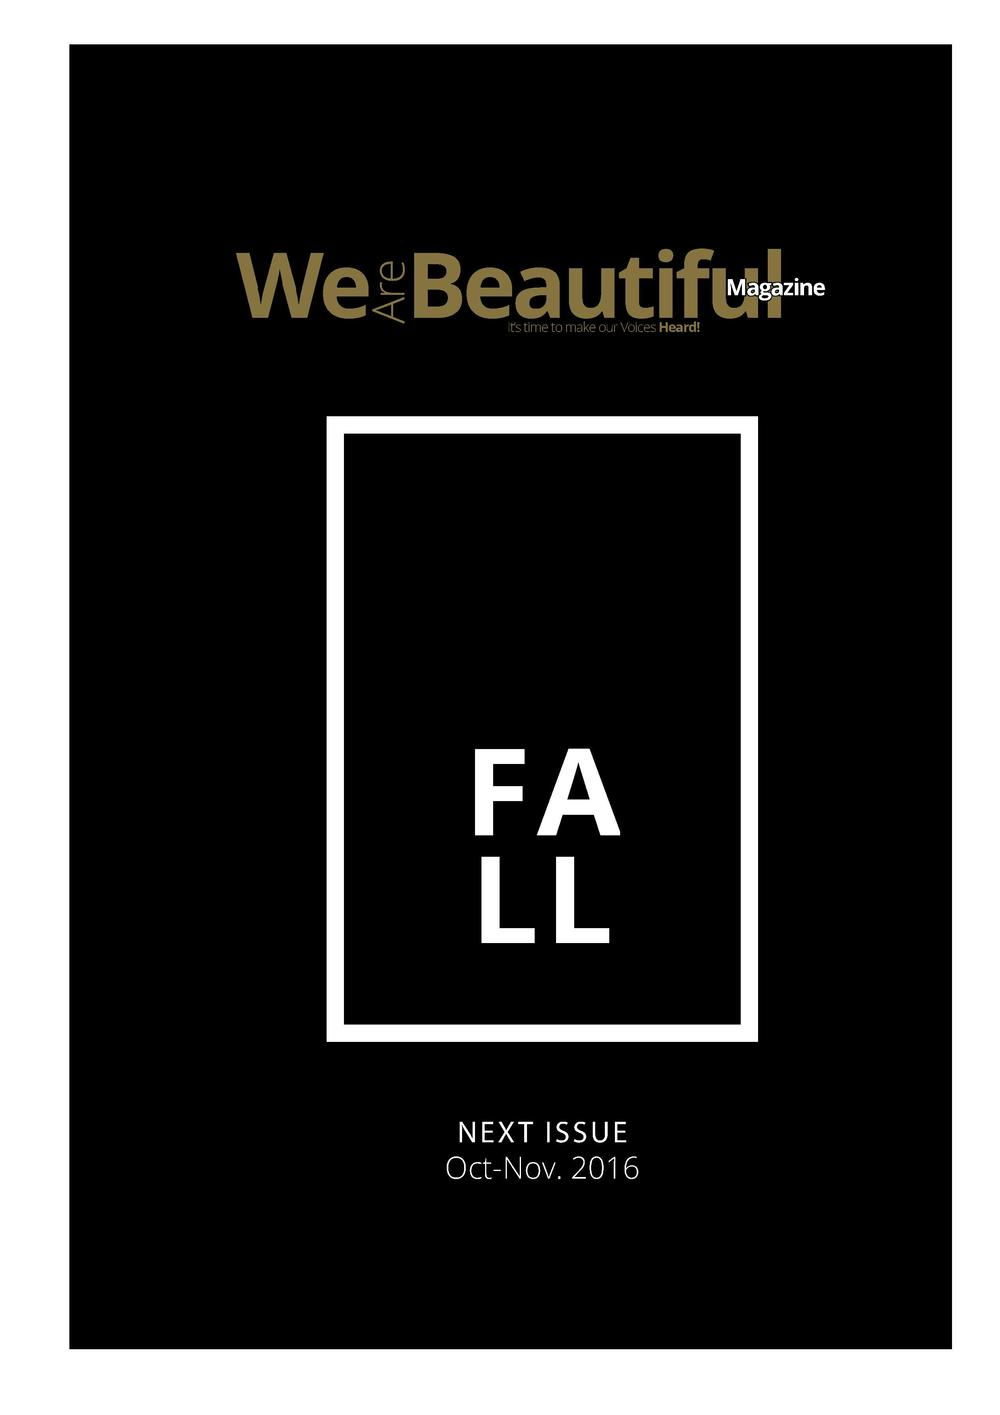 Are  We Beautiful  Magazine  It   s time to make our Voices Heard   FA LL NEX T ISSUE Oct-Nov. 2016  WE ARE BEAUTIFUL MA G...